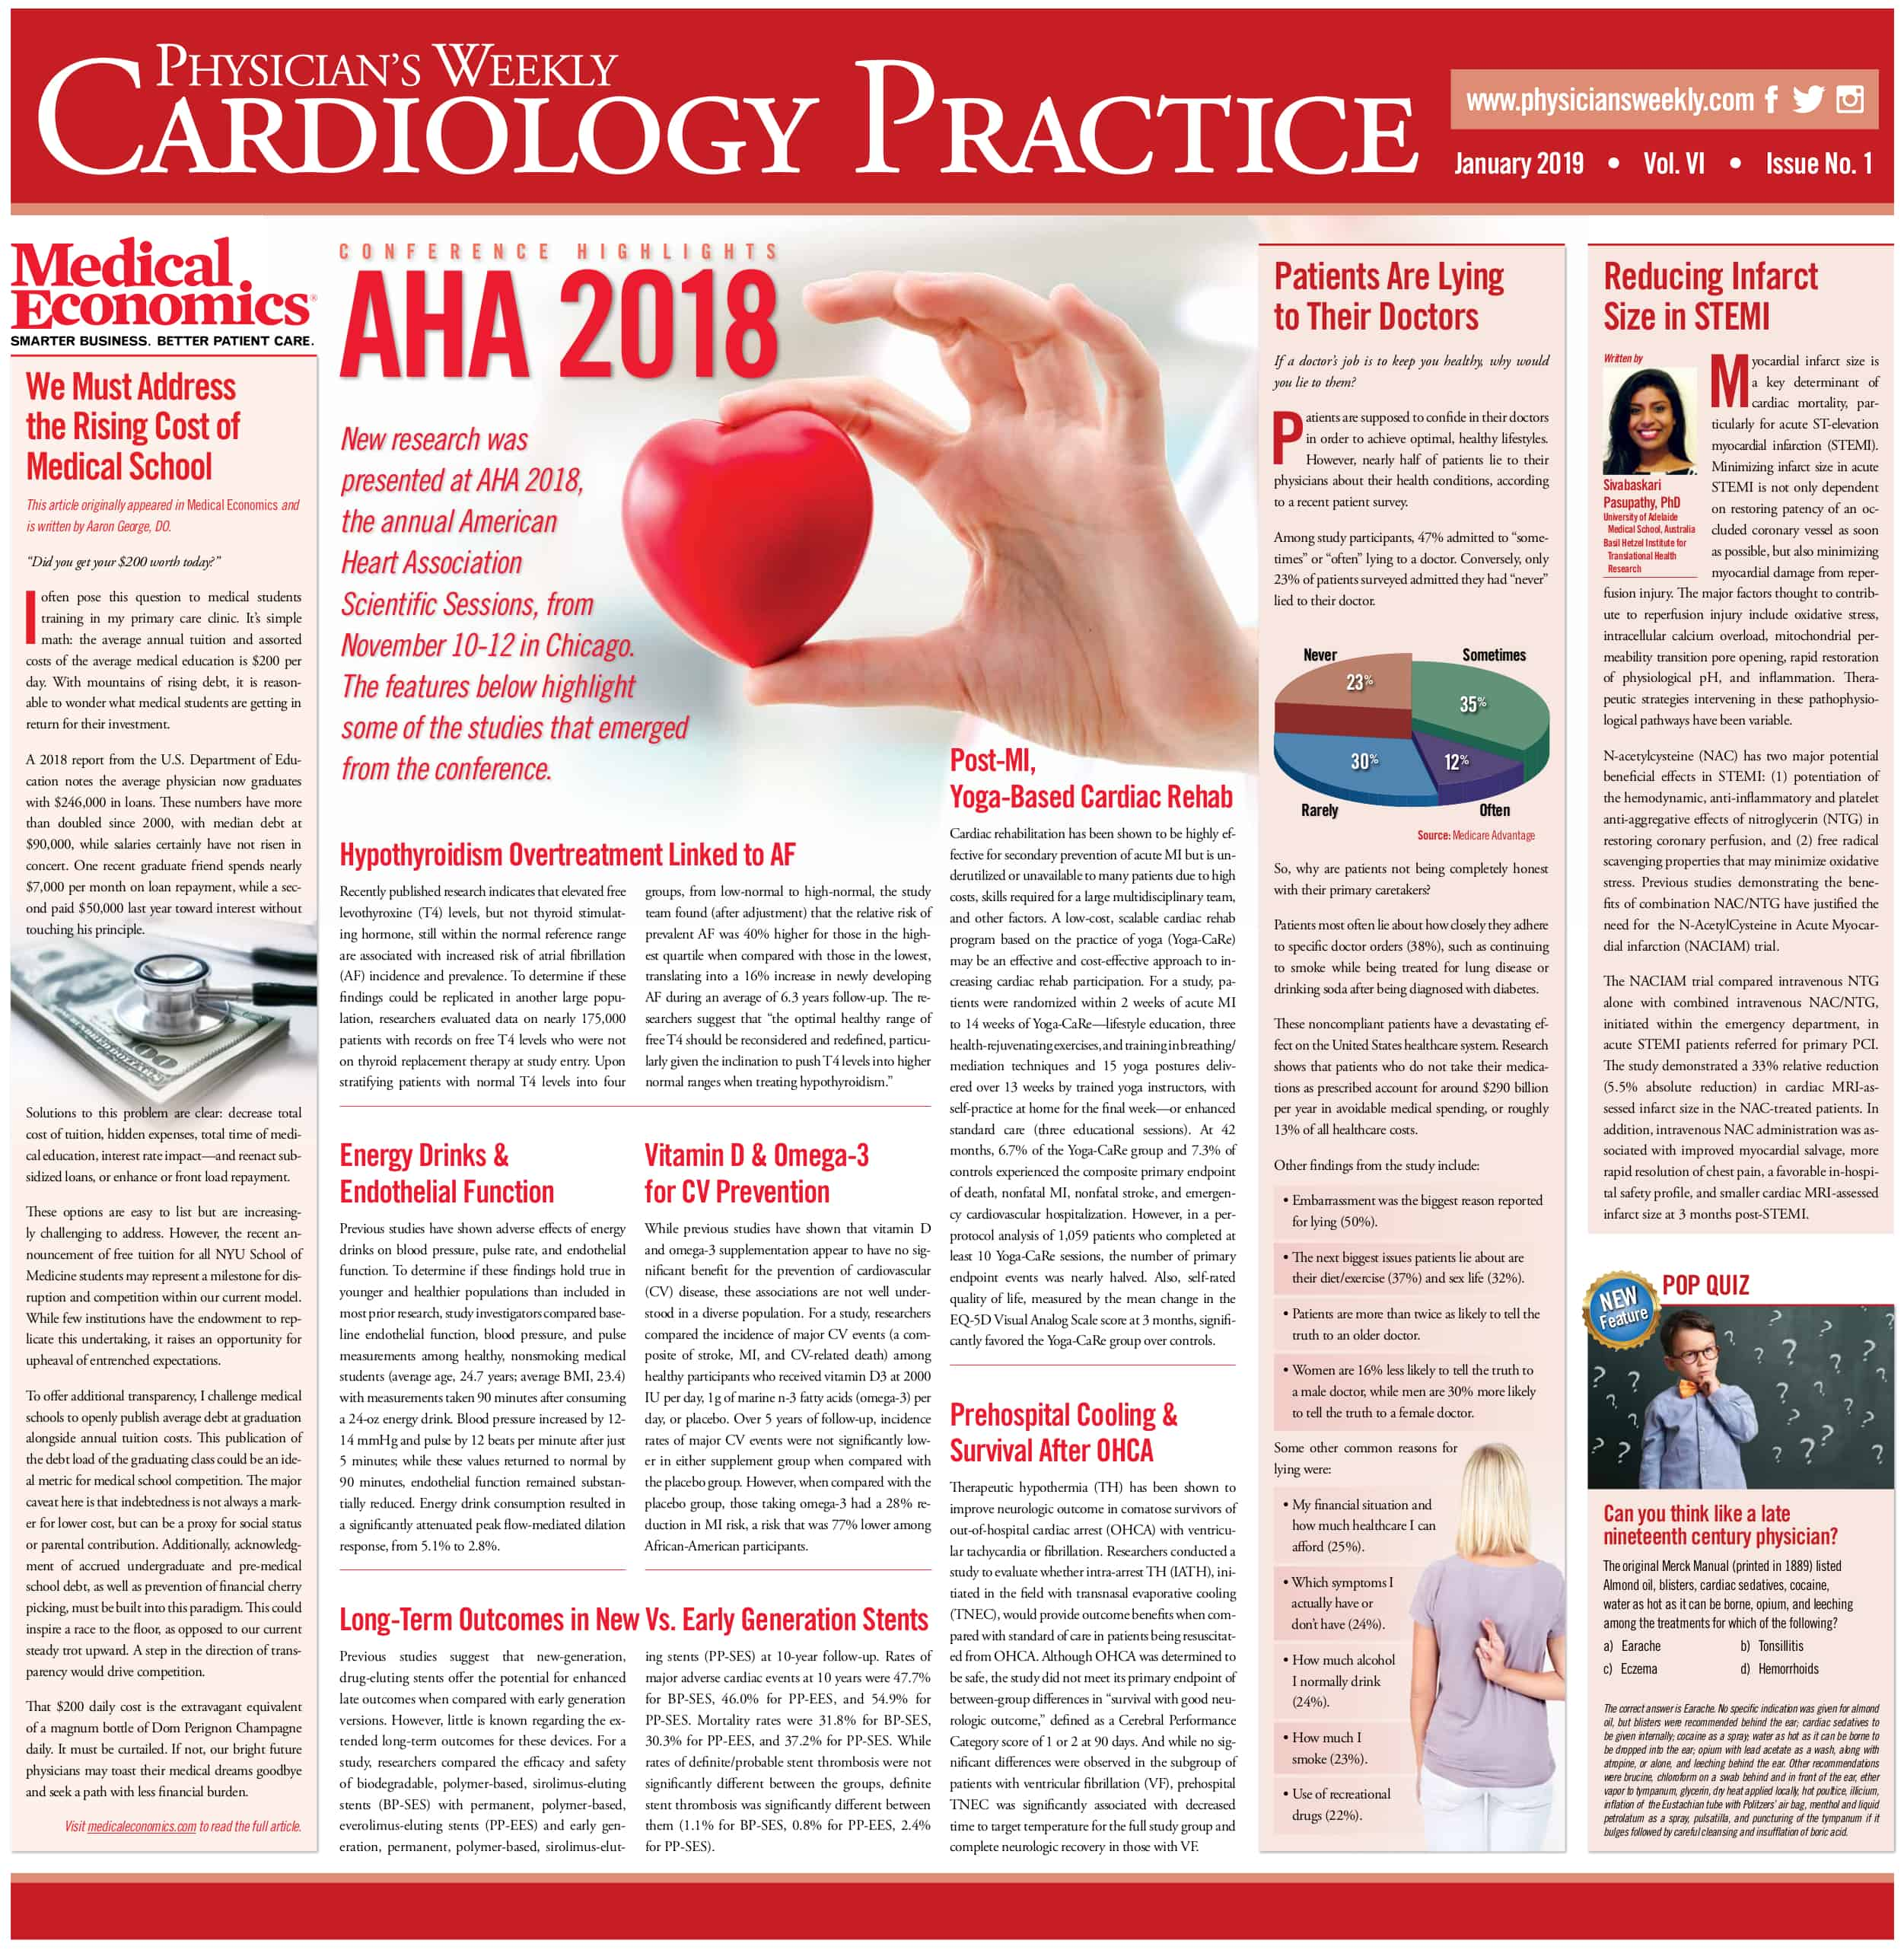 Cardiology Practice: January 2019